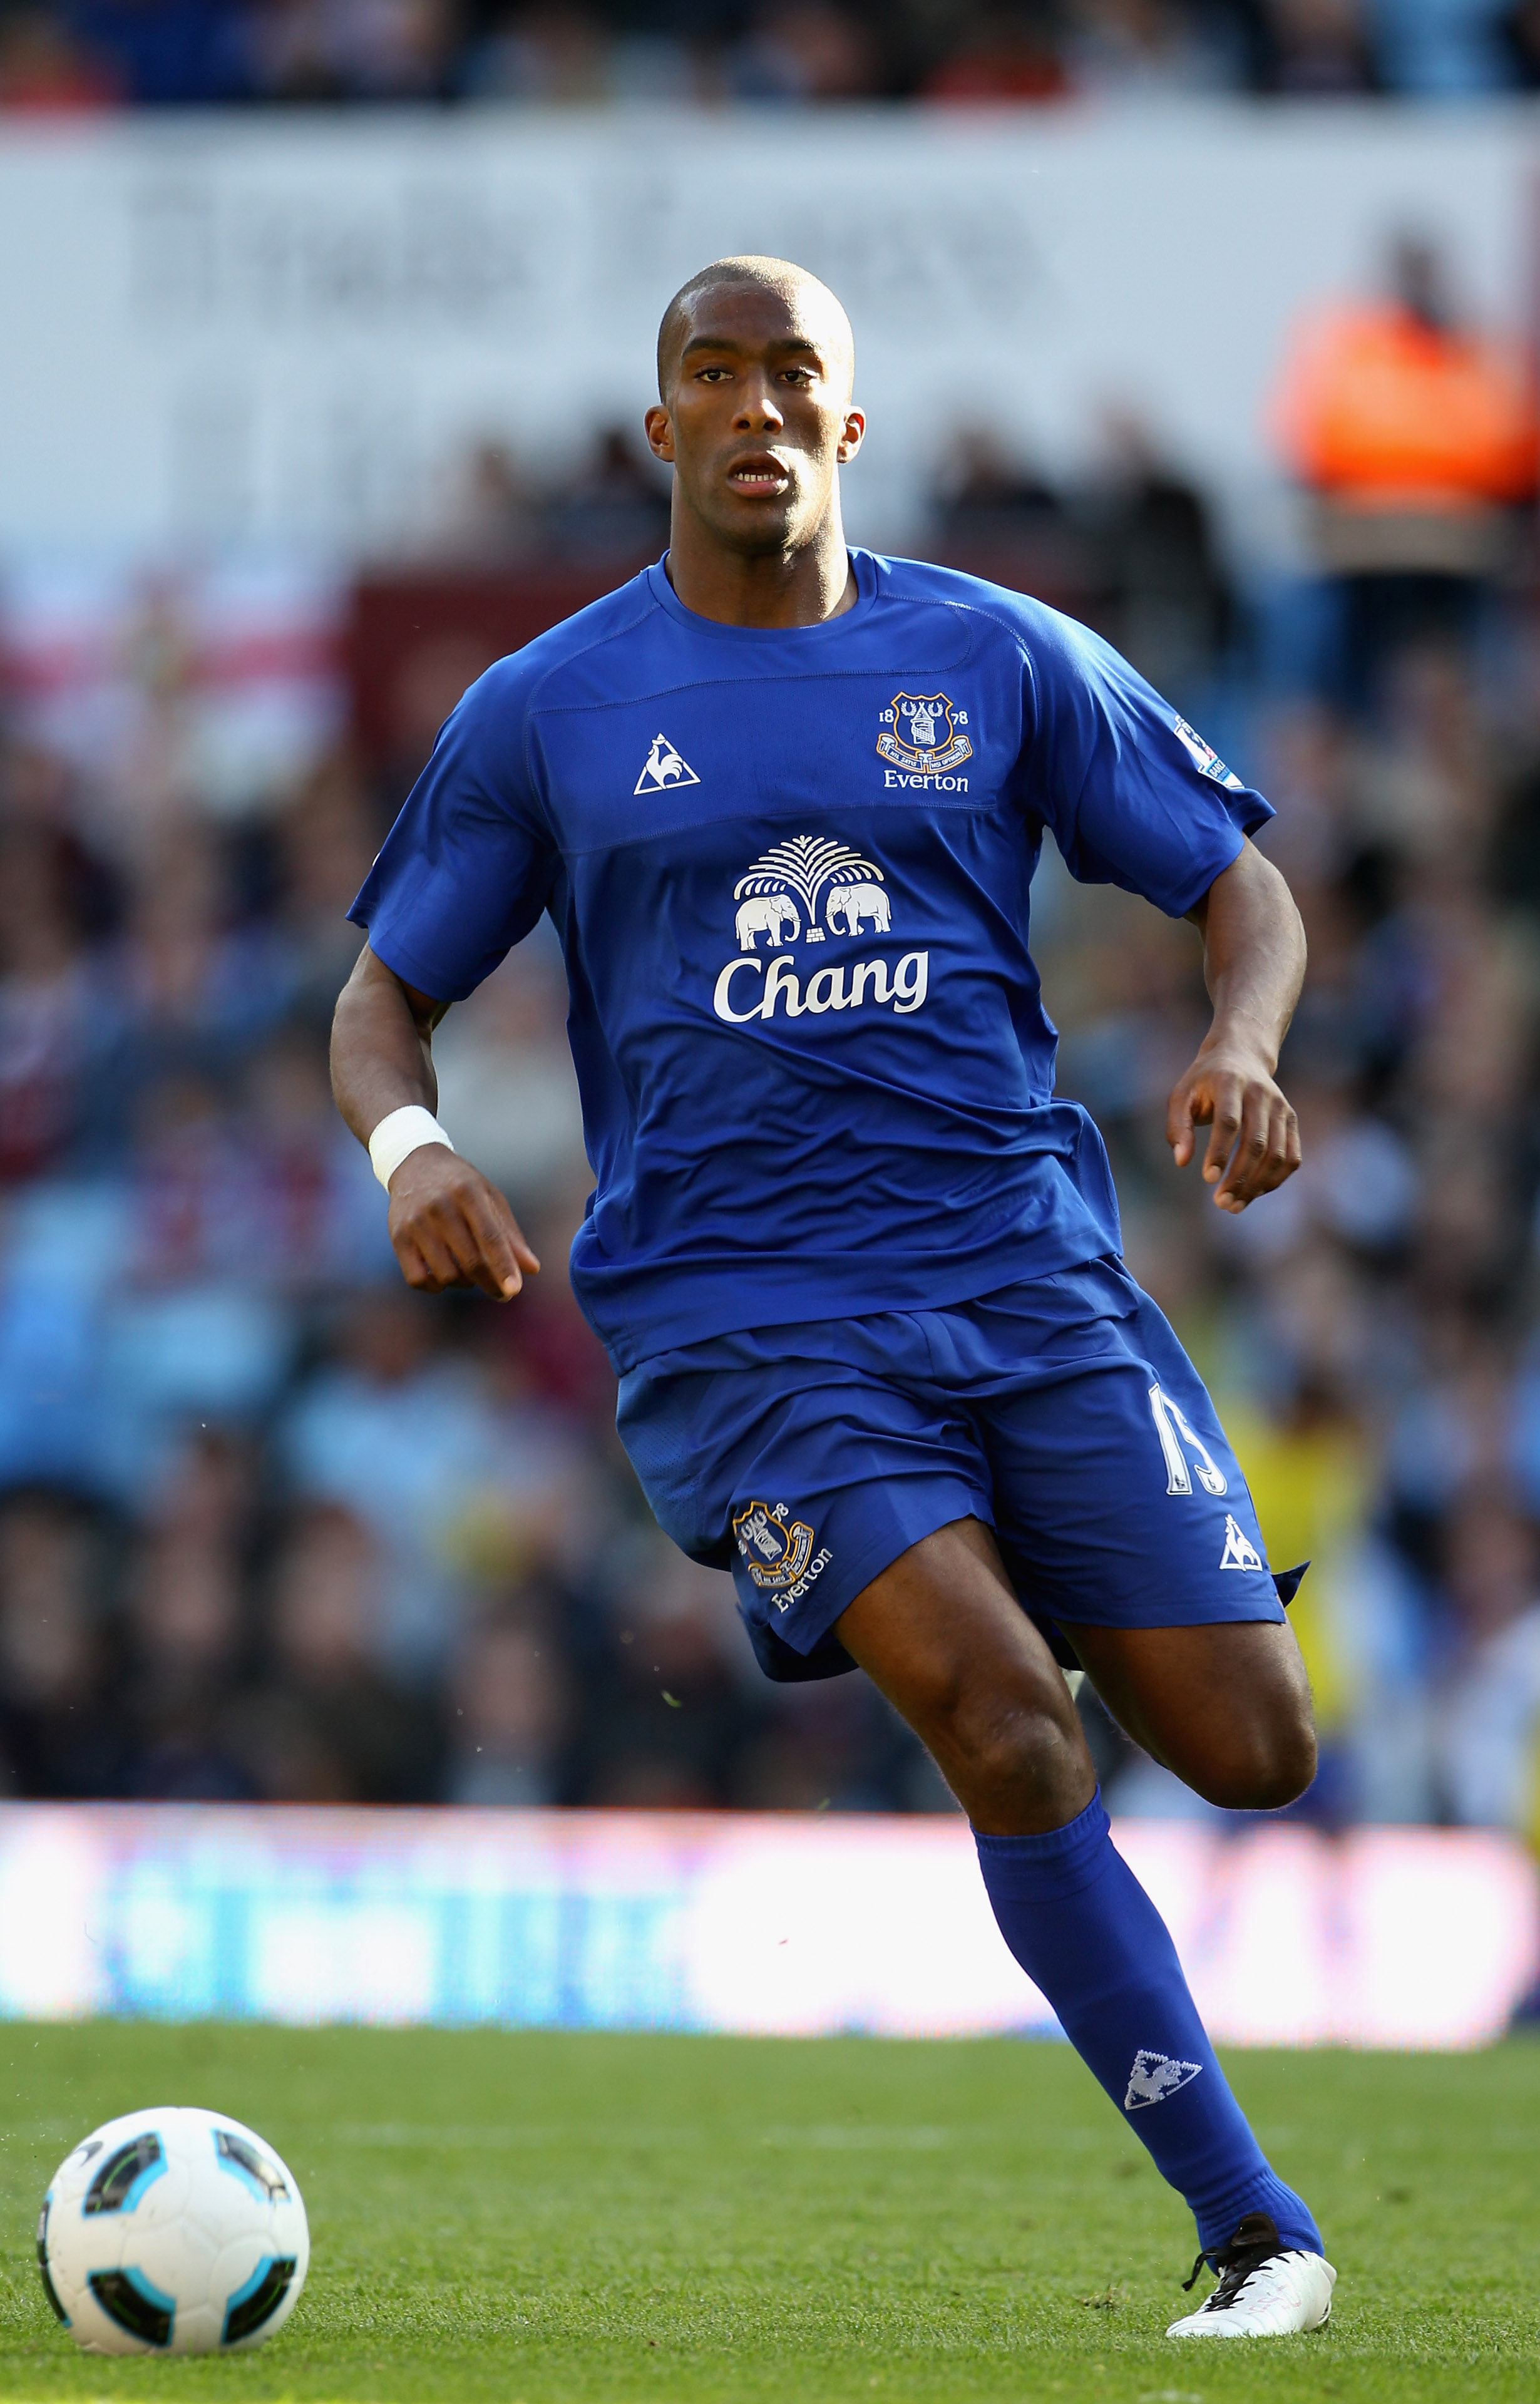 Where does Everton's defensive stalwart Sylvain Distin rank in the list?